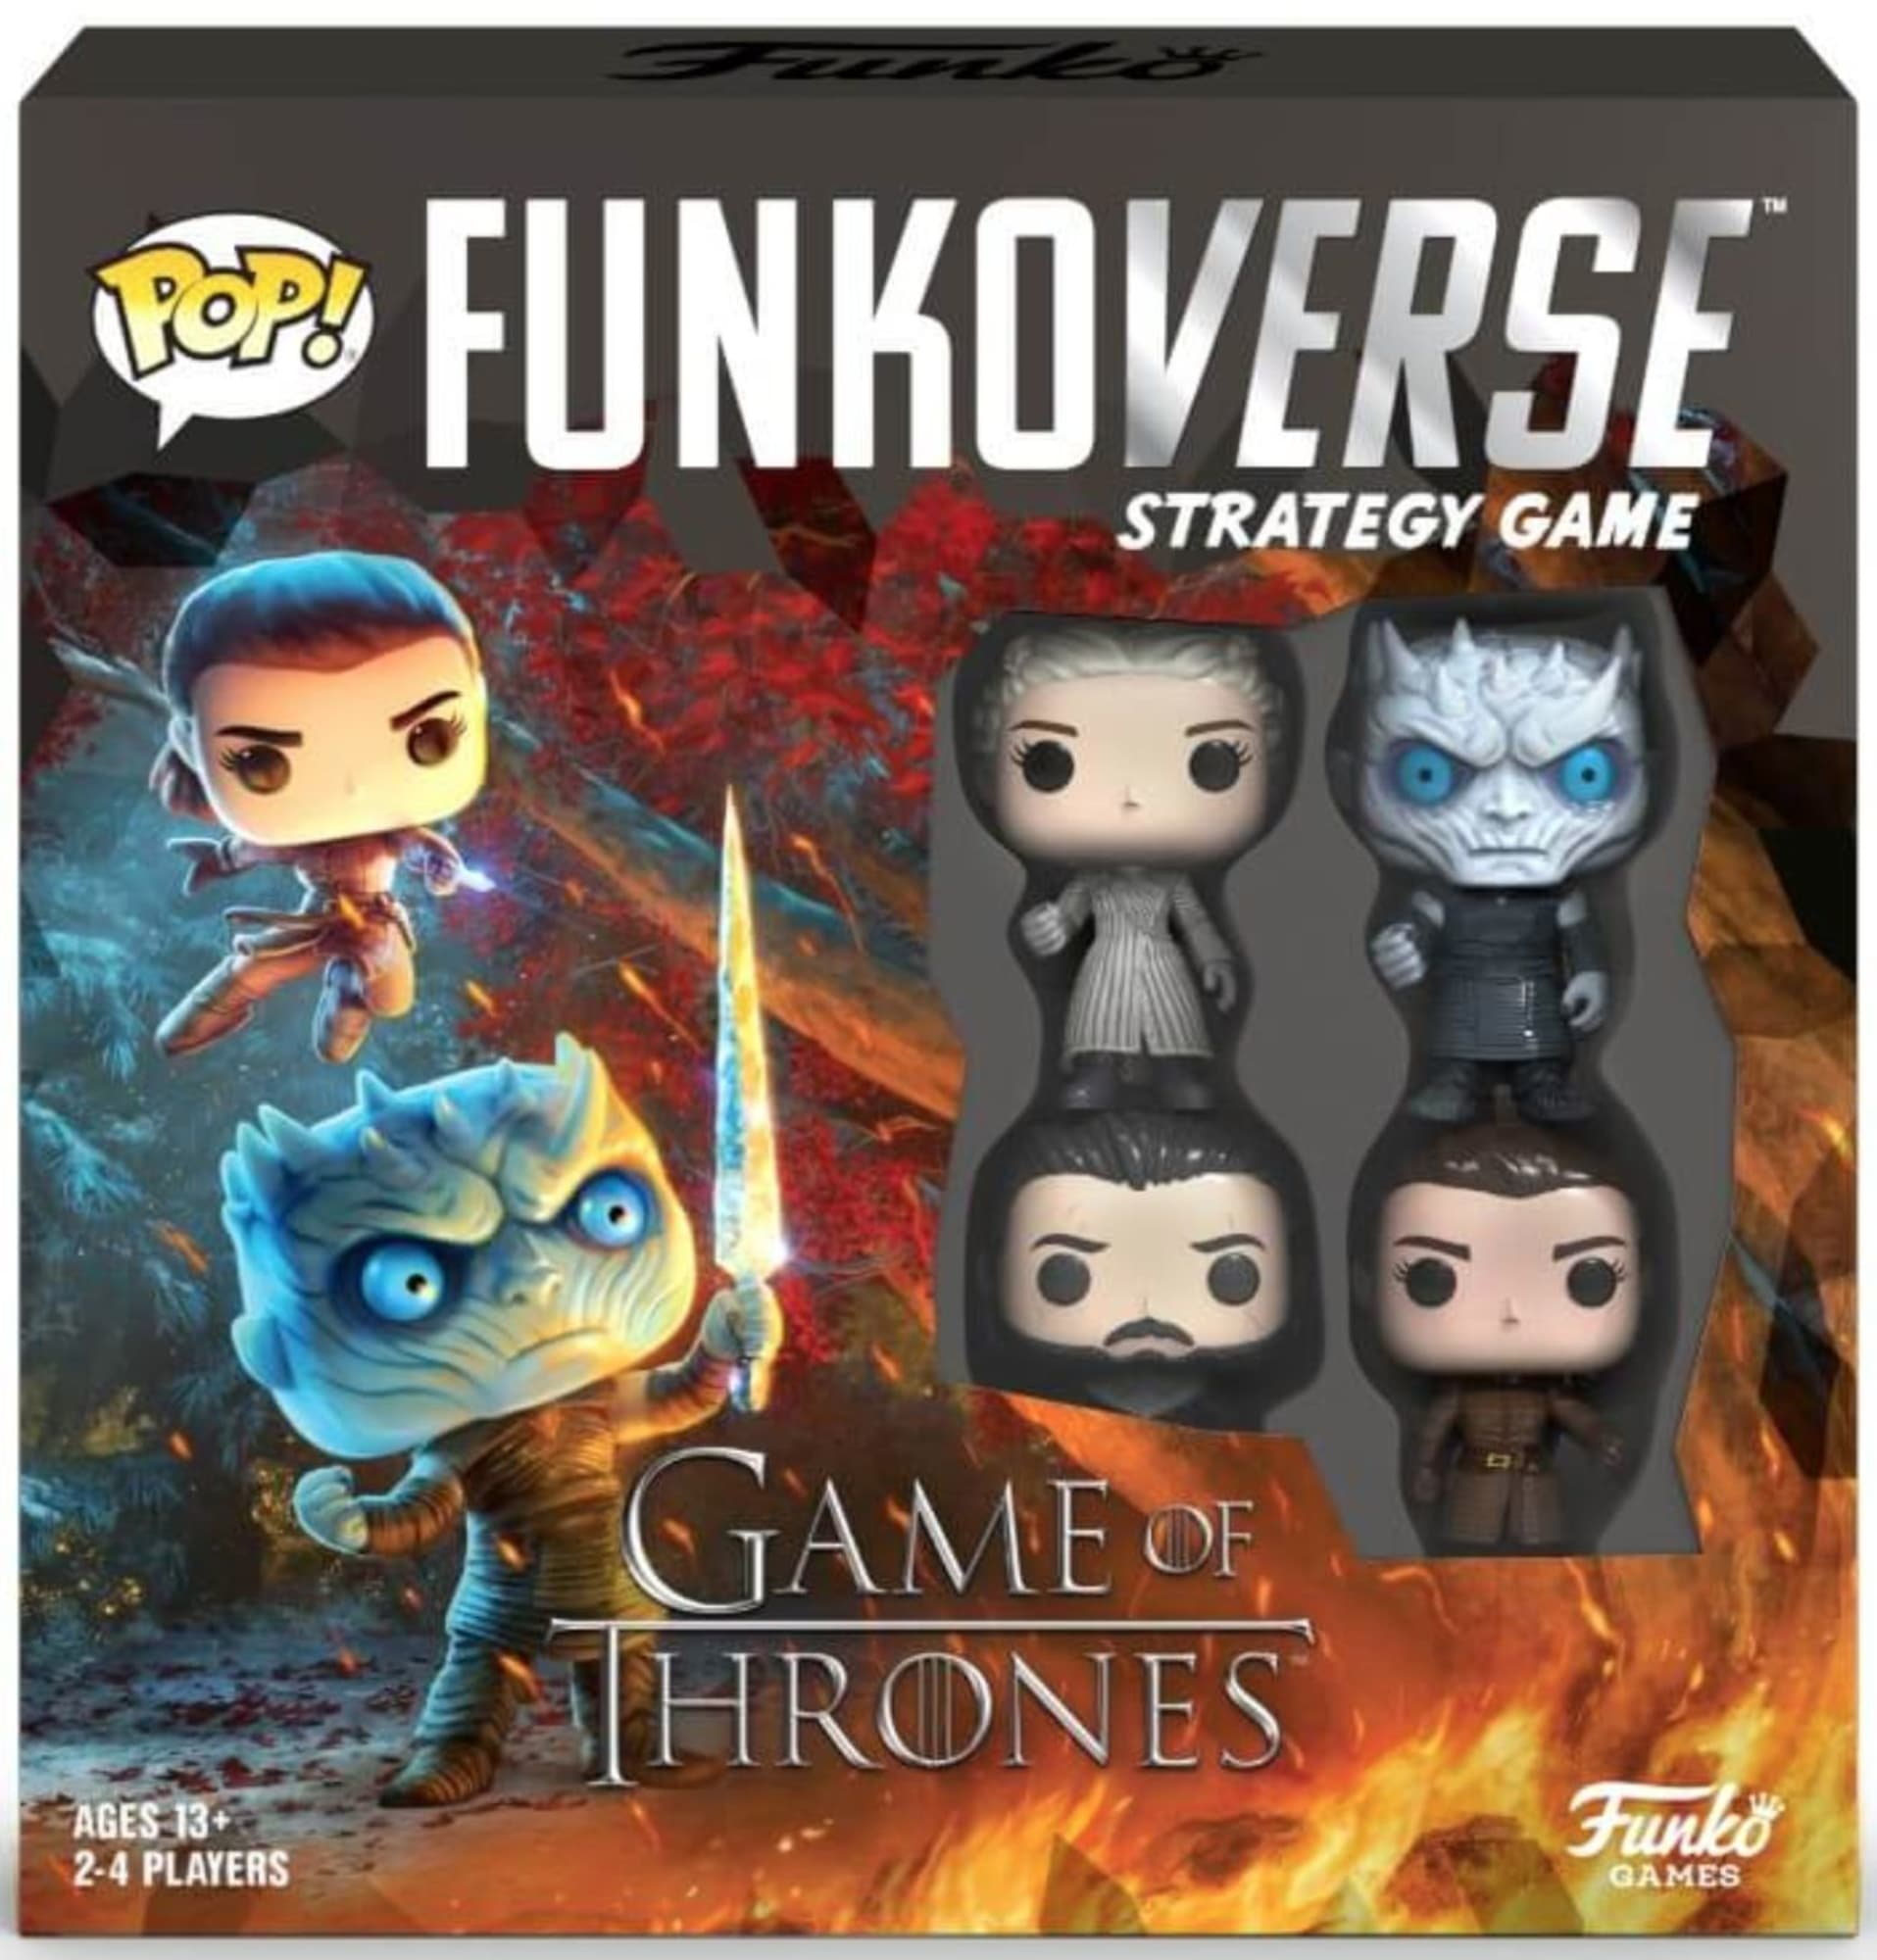 A Game of Thrones Funkoverse board game is coming